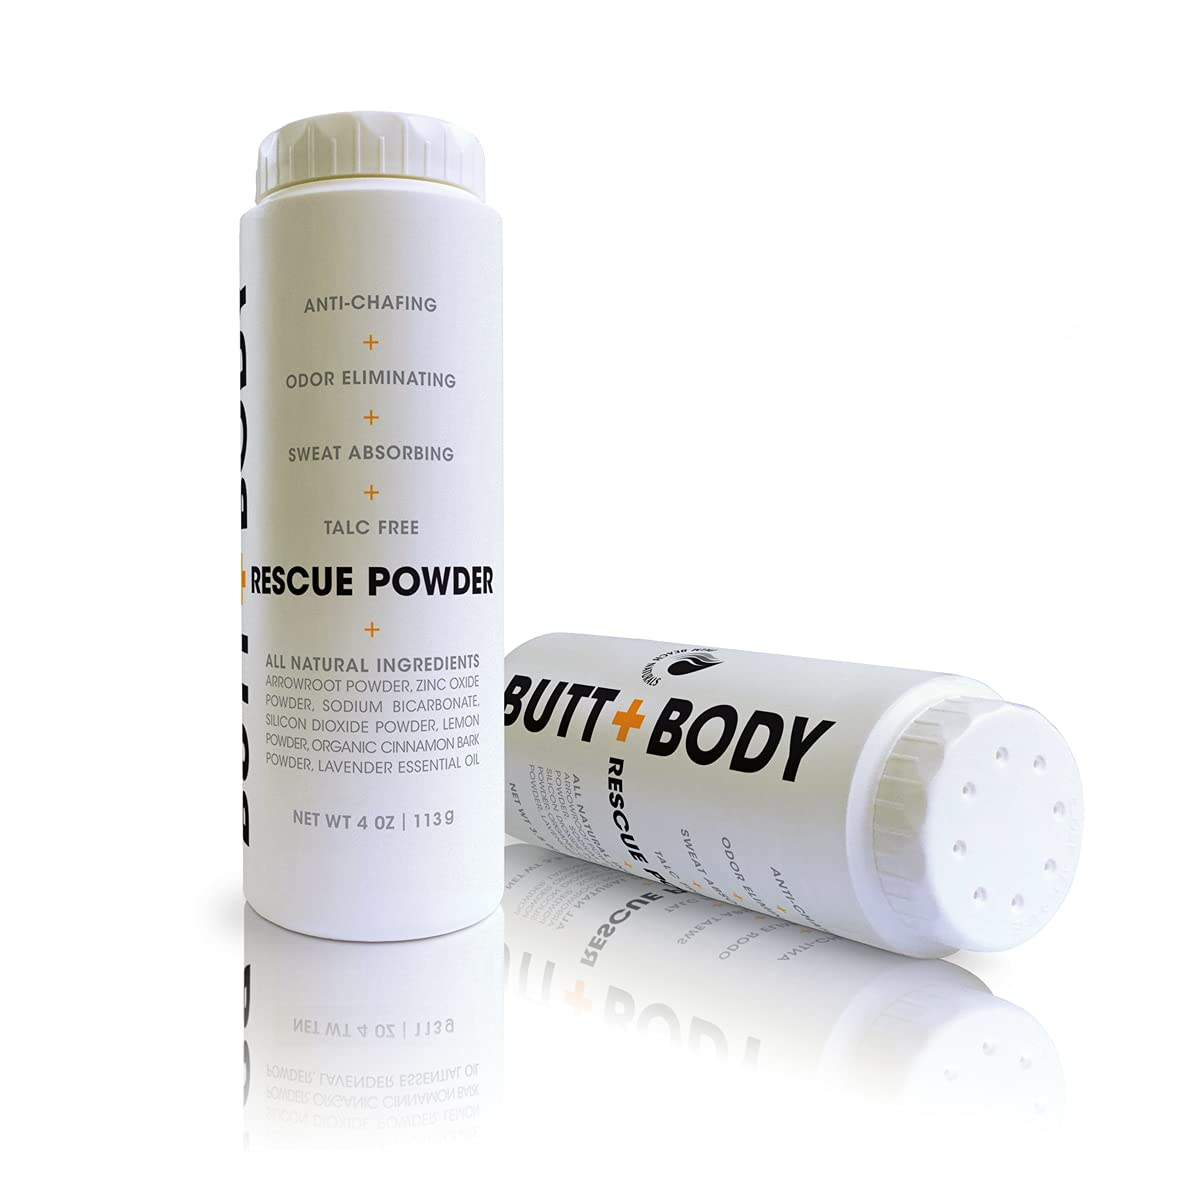 Butt and Body Rescue Powder - Stops Itching & Chafing, Absorbs Sweat & Eliminates Odors Naturally. Protects, Soothes & Deodorizes Irritated Skin, Talc Free. Made in USA (4 Ounce - 1 Pack) : Beauty